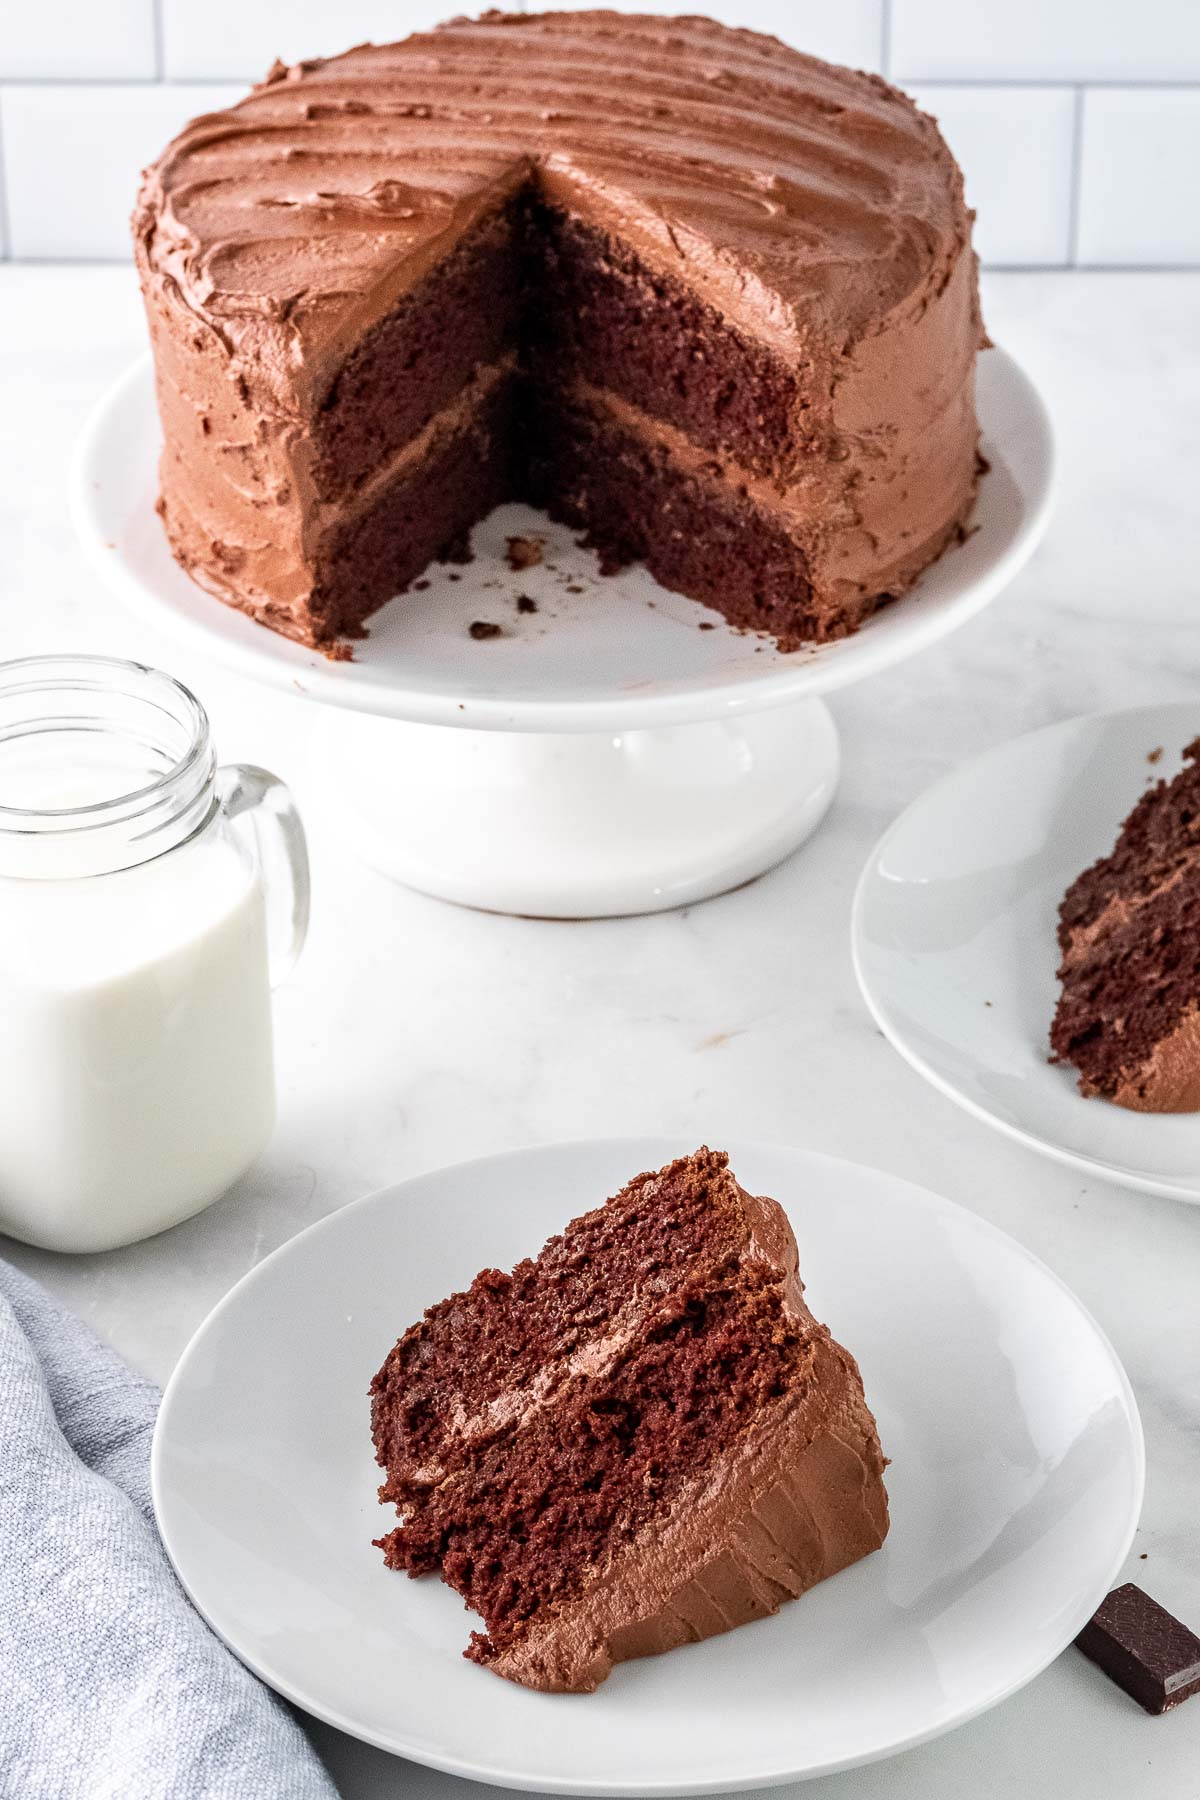 a slice of chocolate cake with chocolate frosting on a white plate with the whole cake on a cake stand in the background